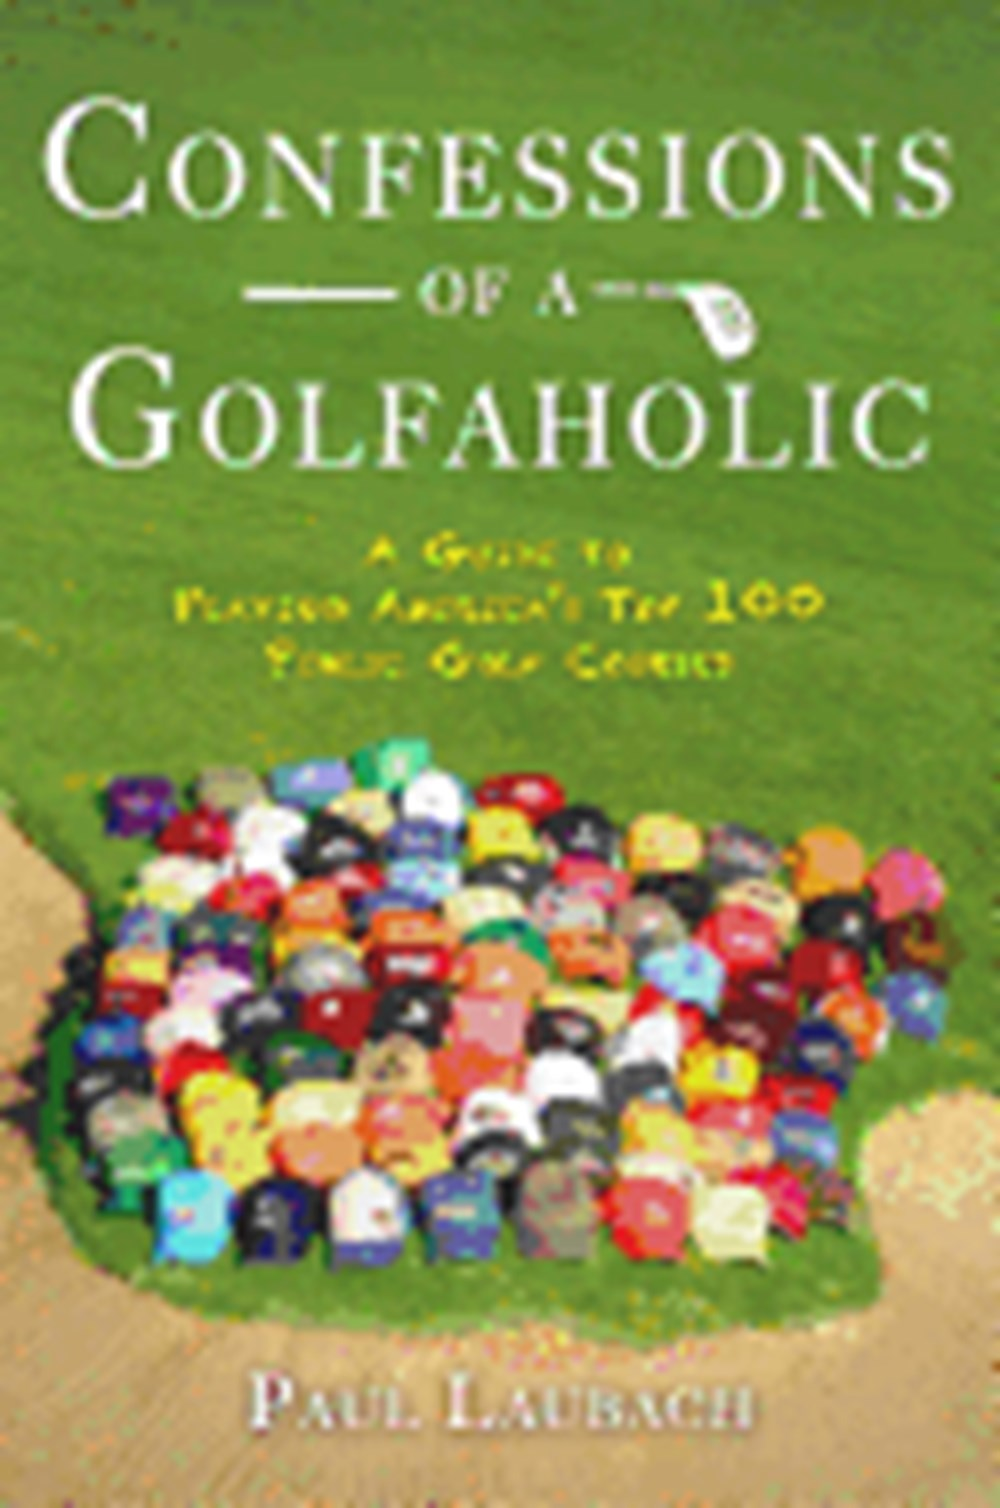 Confessions of a Golfaholic A Guide to Playing America's Top 100 Public Golf Courses